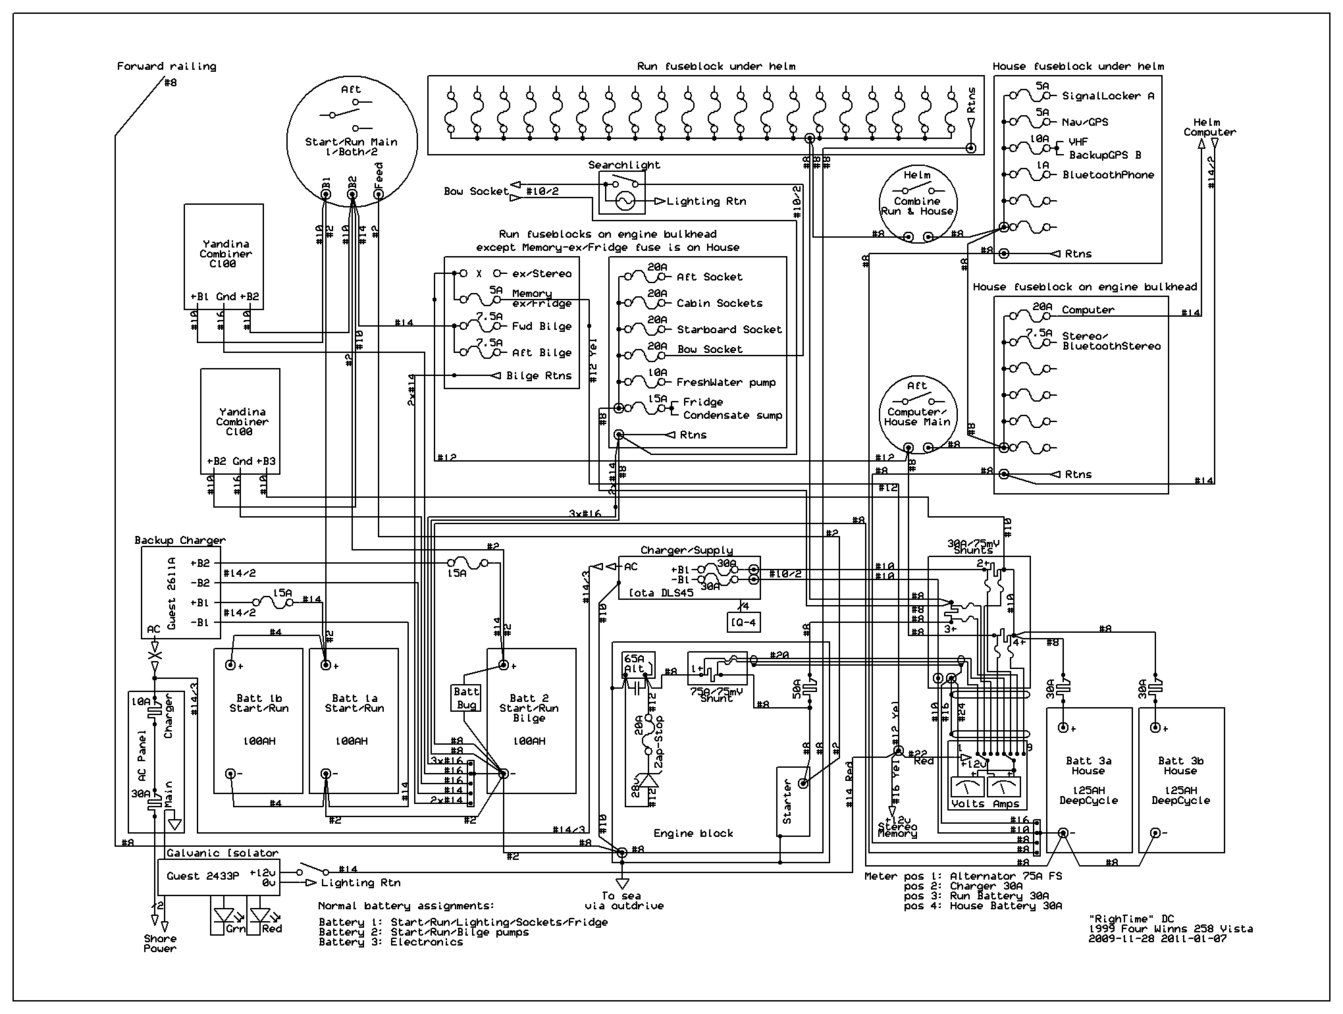 boat fuel tank wiring diagram free picture software to document boat wiring - the hull truth ...